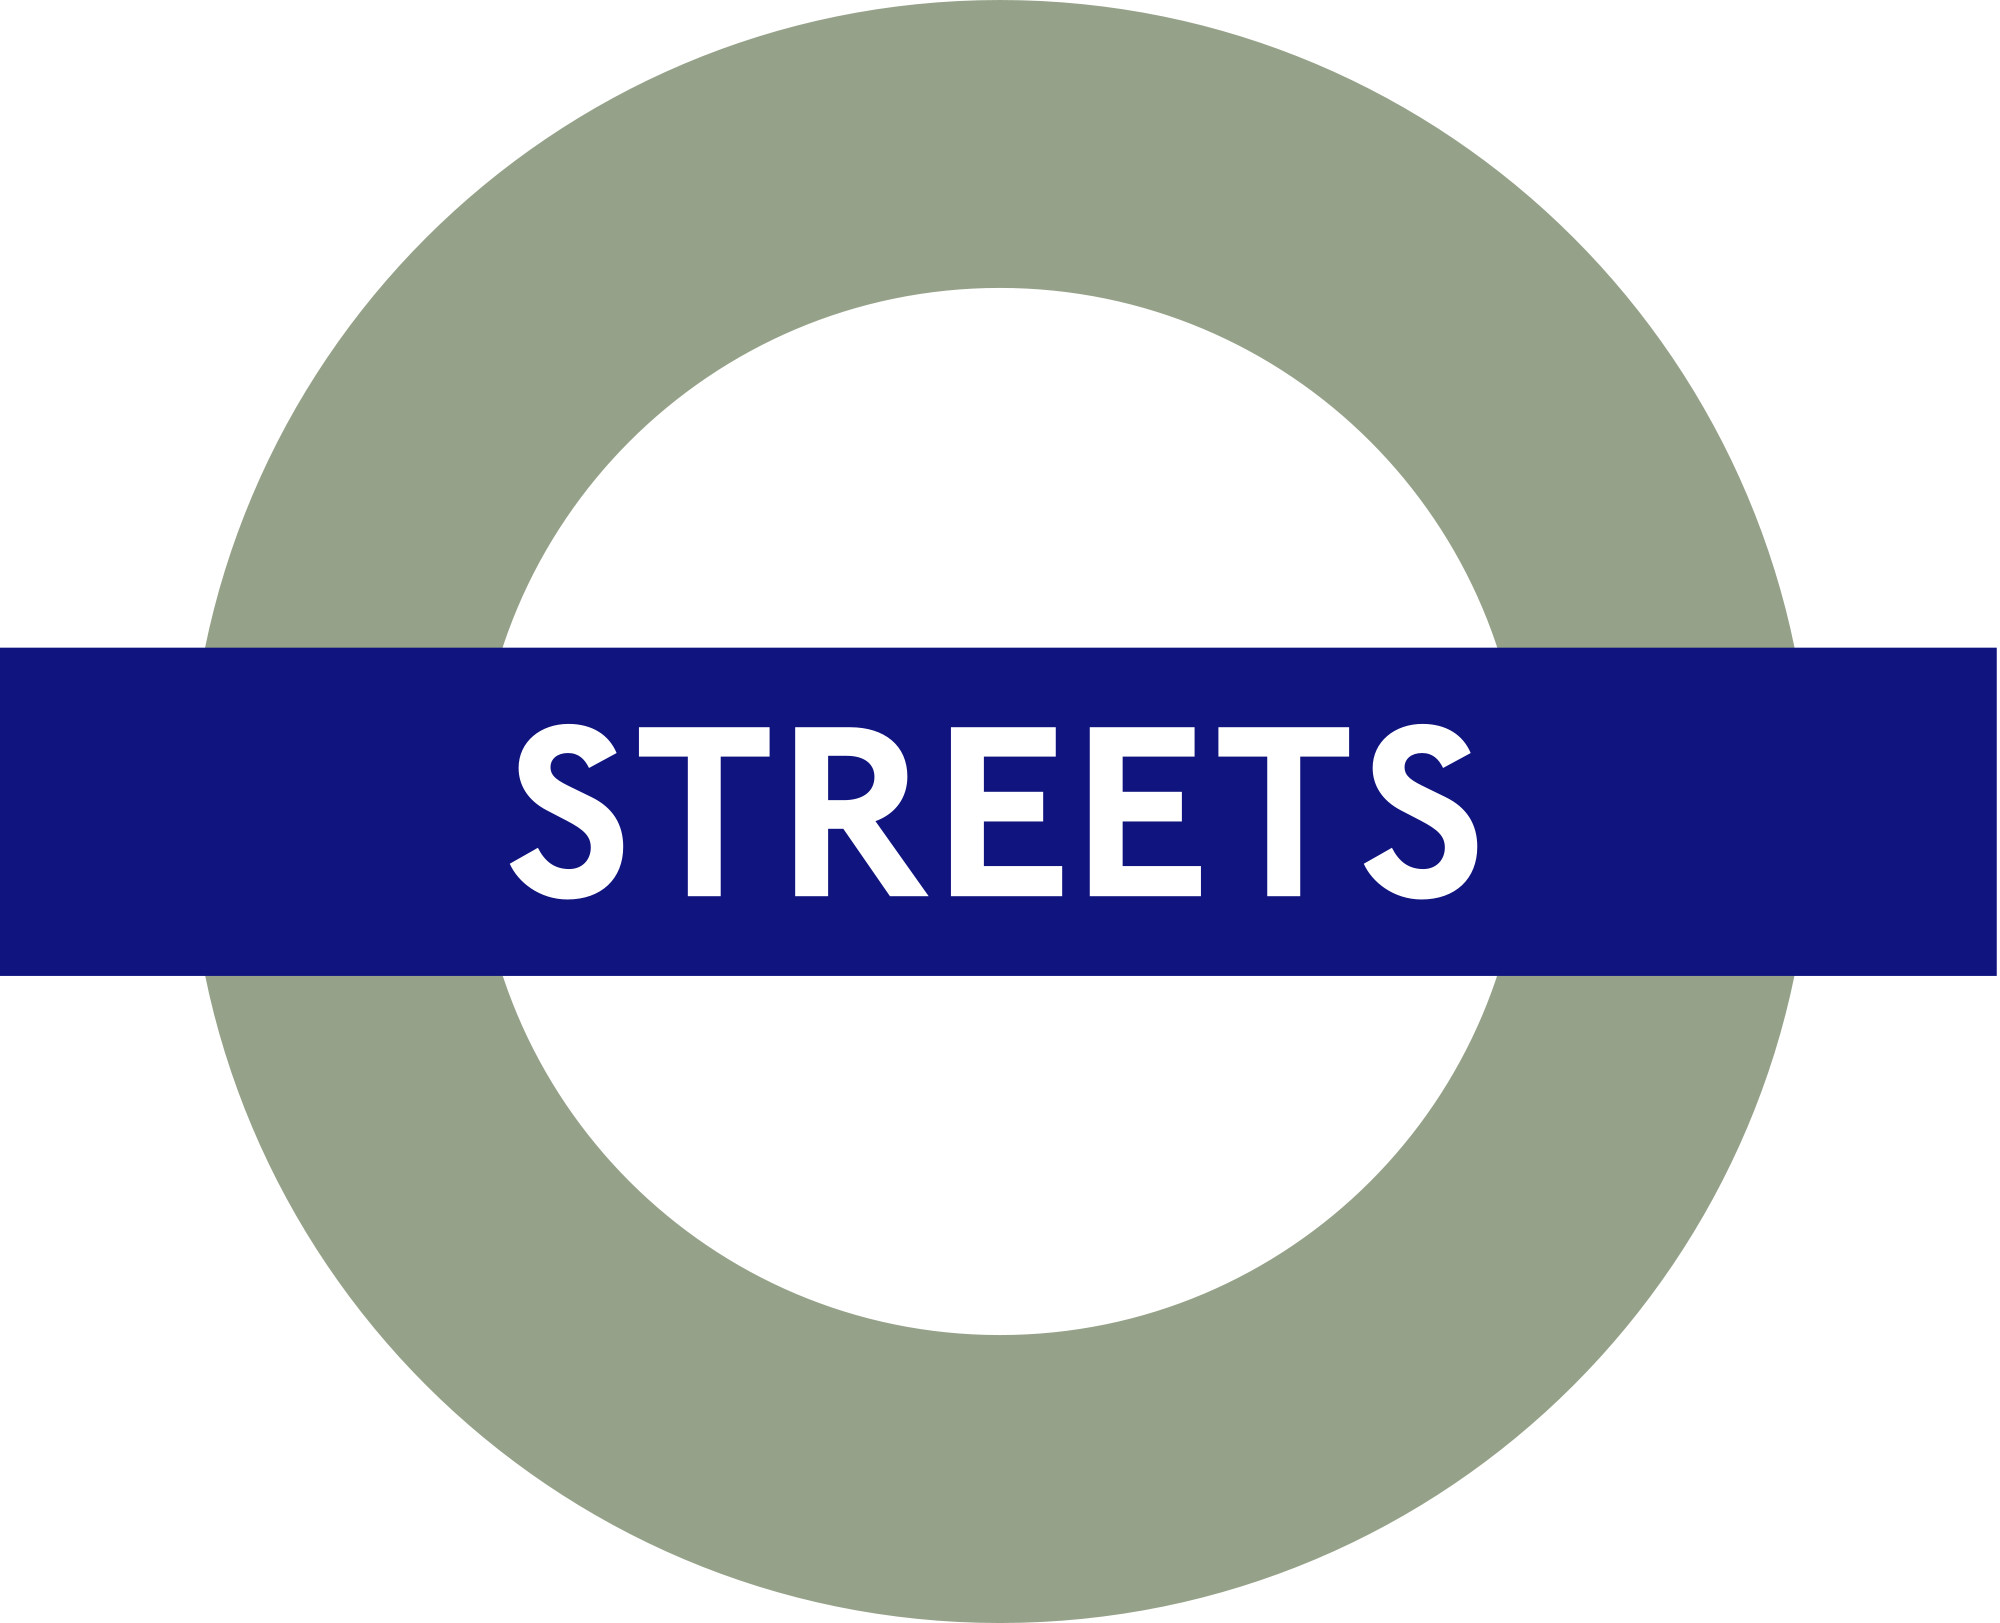 2000x1623 Transport For London images Streets Logo HD wallpaper and background photos